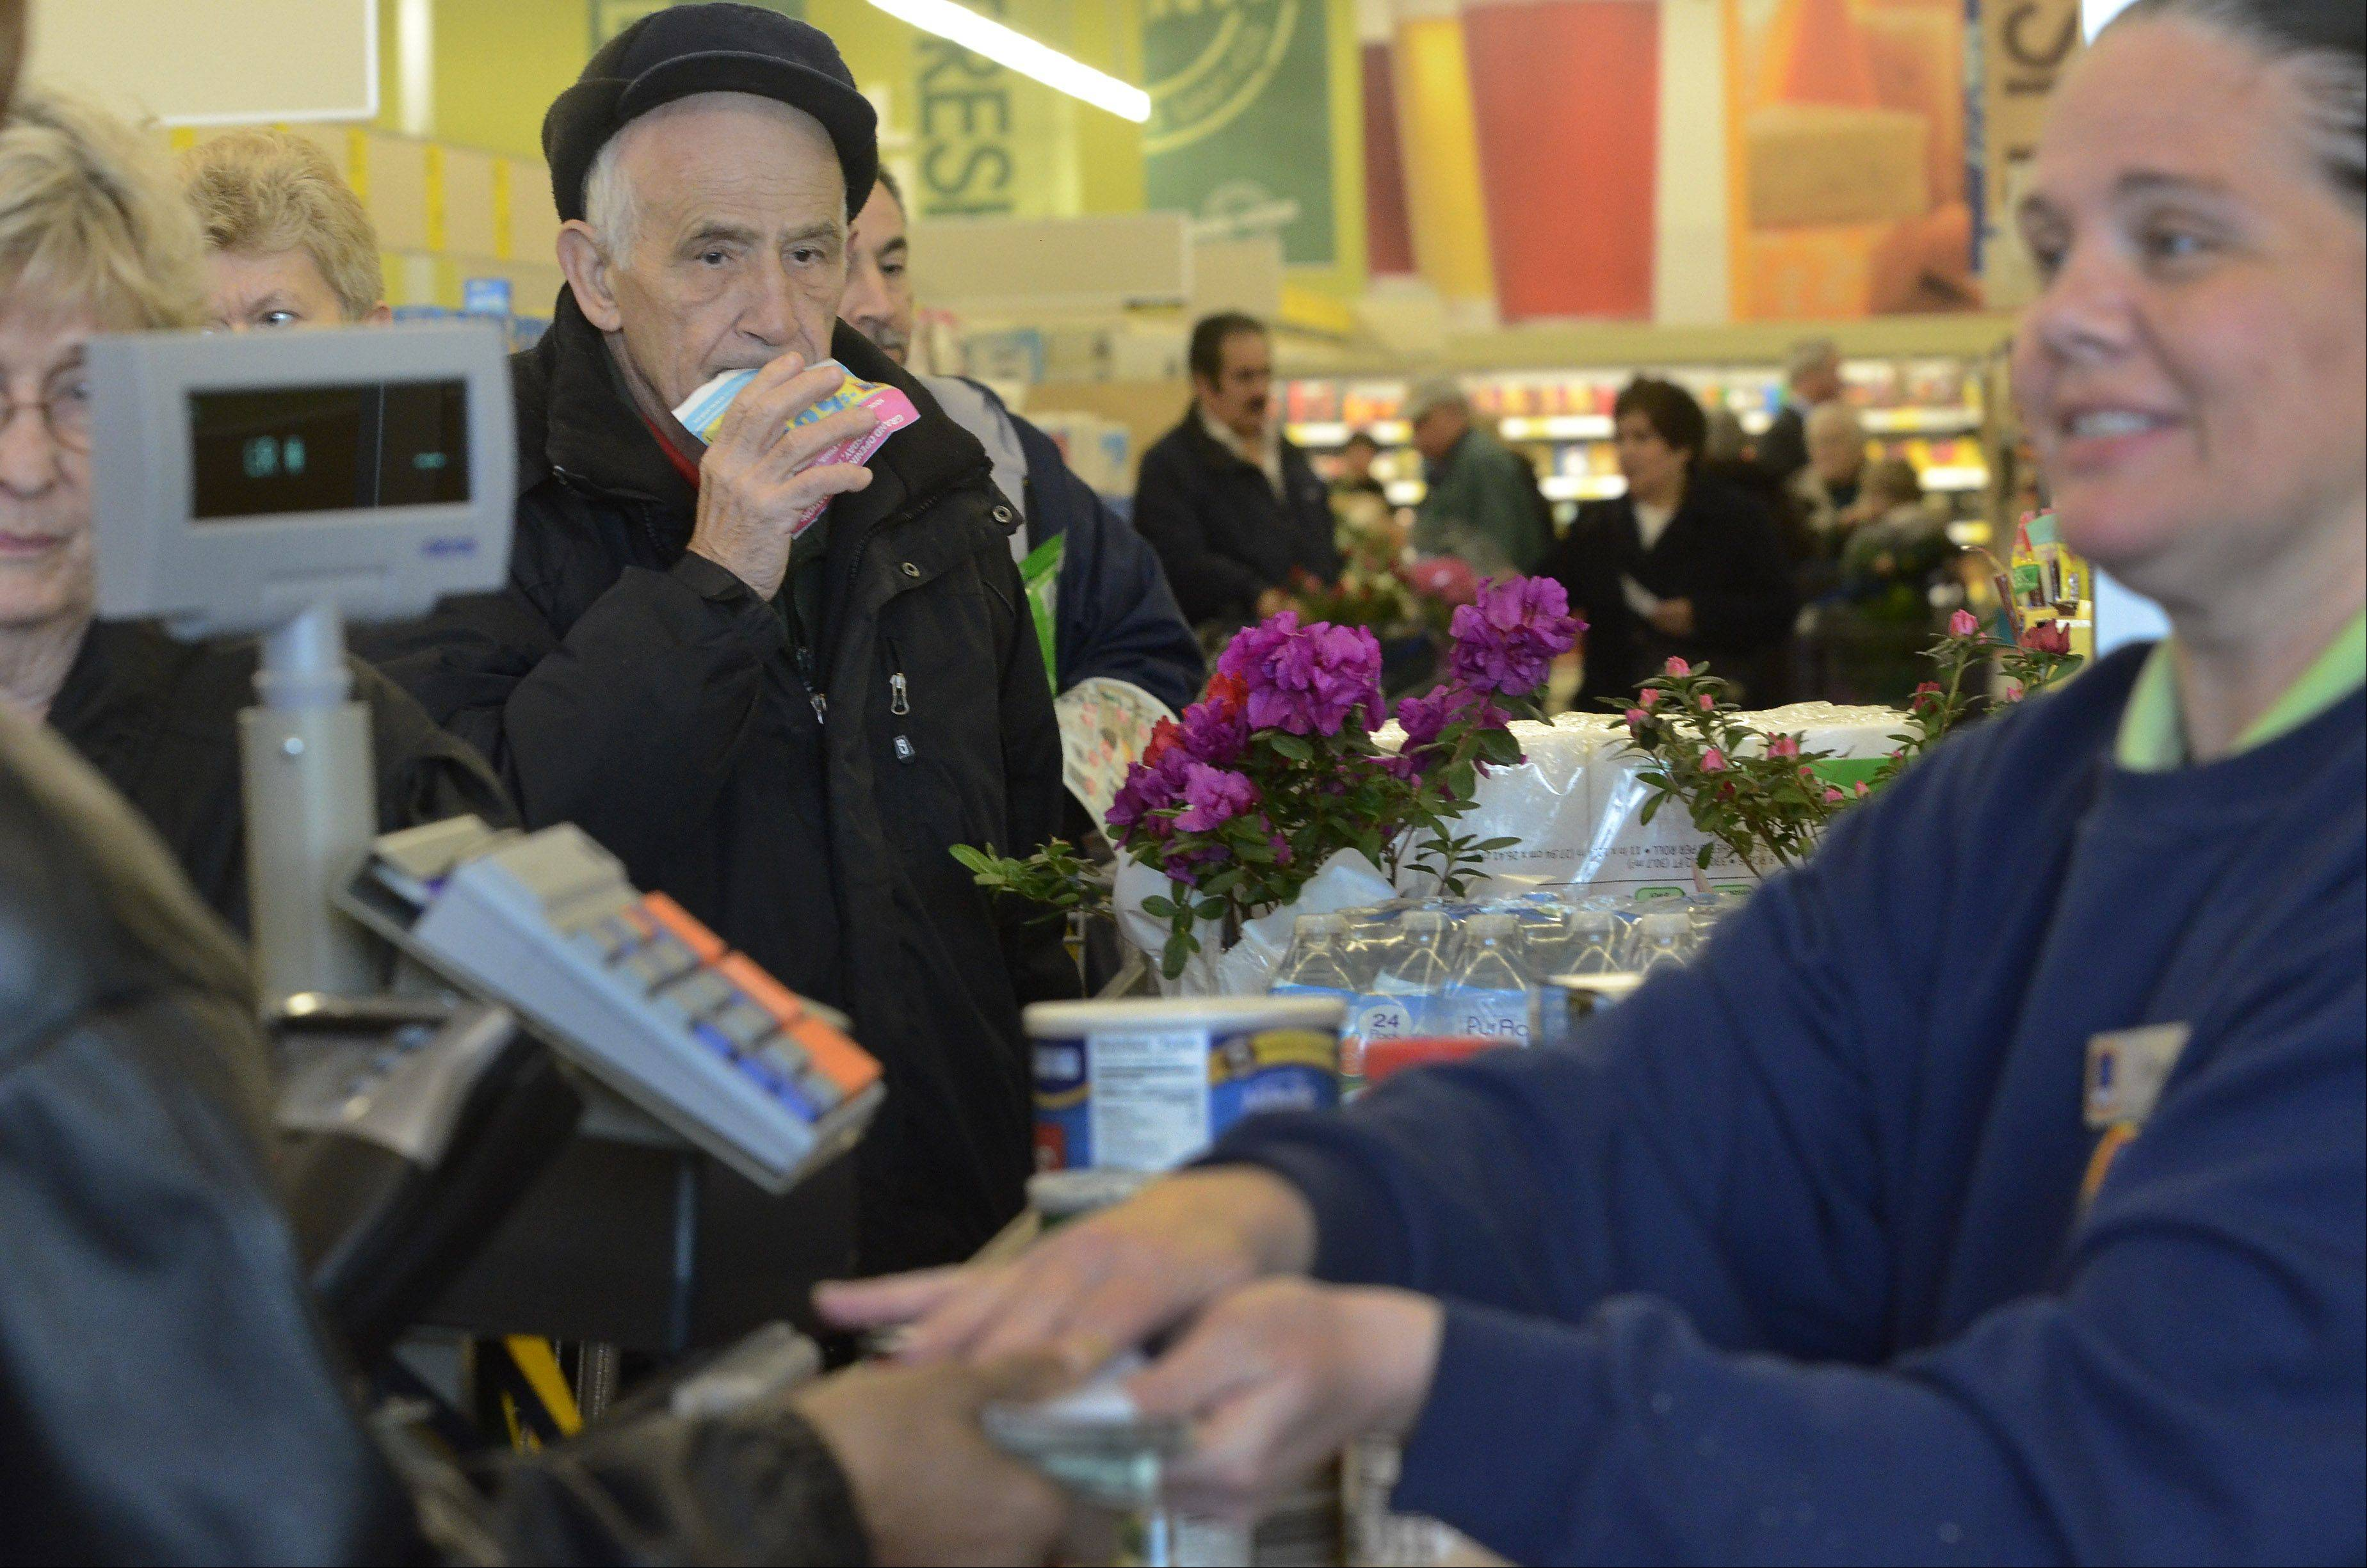 Joe Klett of Mount Prospect waits in line with his coupon as Aldi cashier Kim Buchen gives change to a customer as the new Aldi grocery store formally opens Thursday in Mount Prospect.